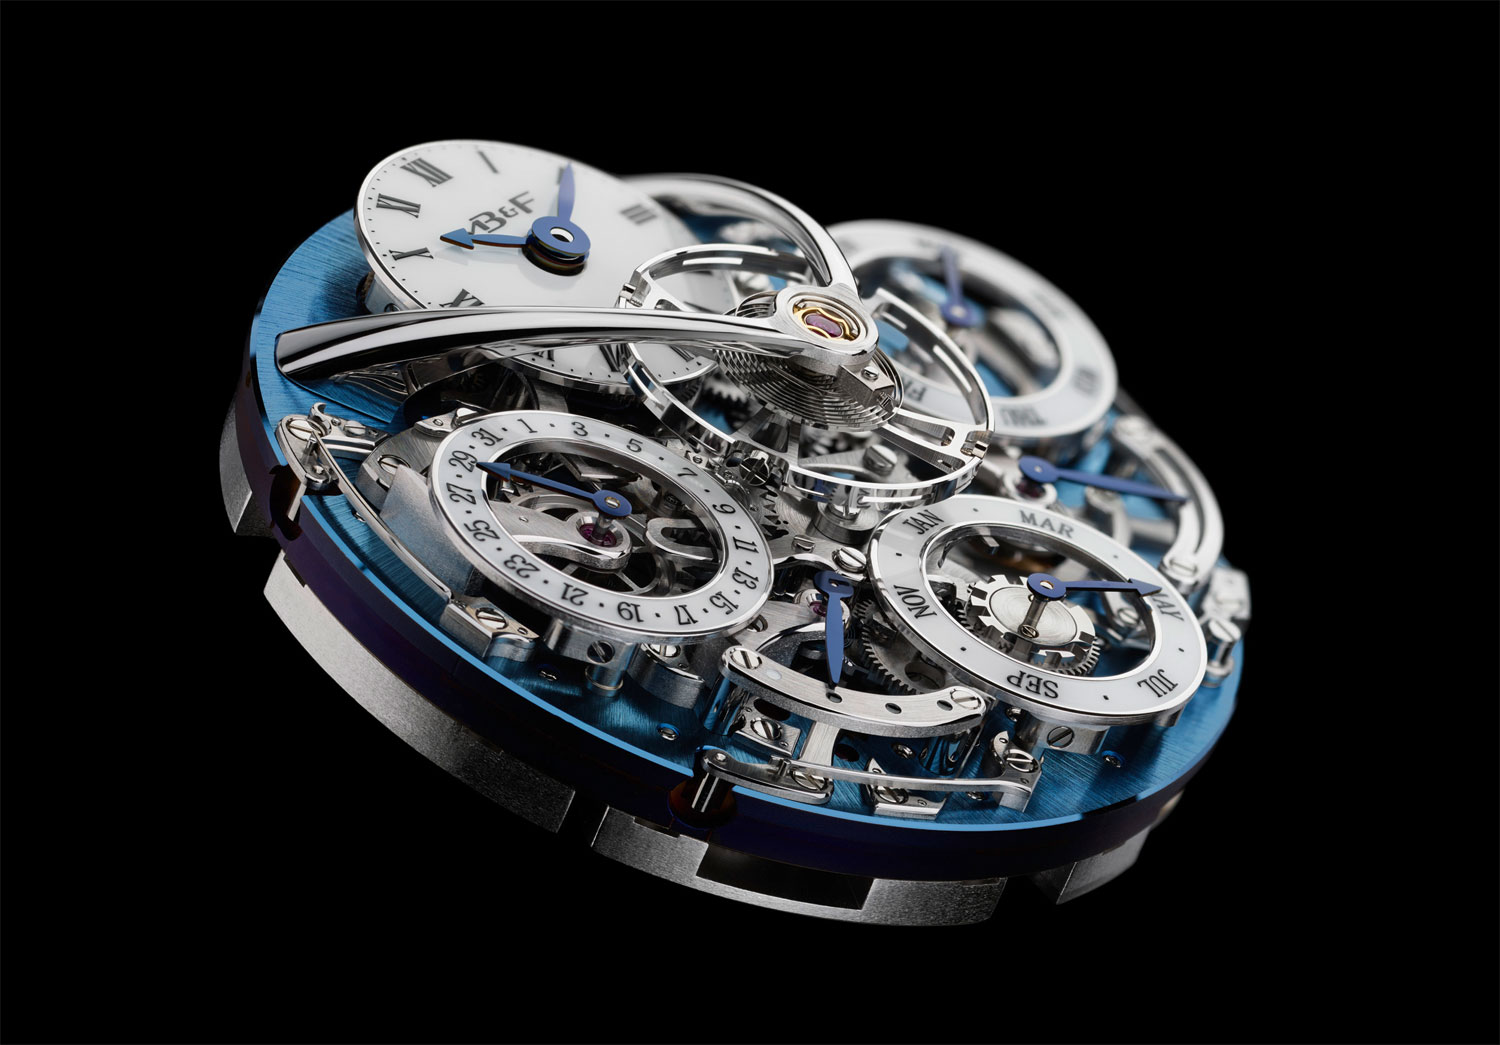 The Legacy Machine Perpetual watch features a fully integrated 581-component calibre